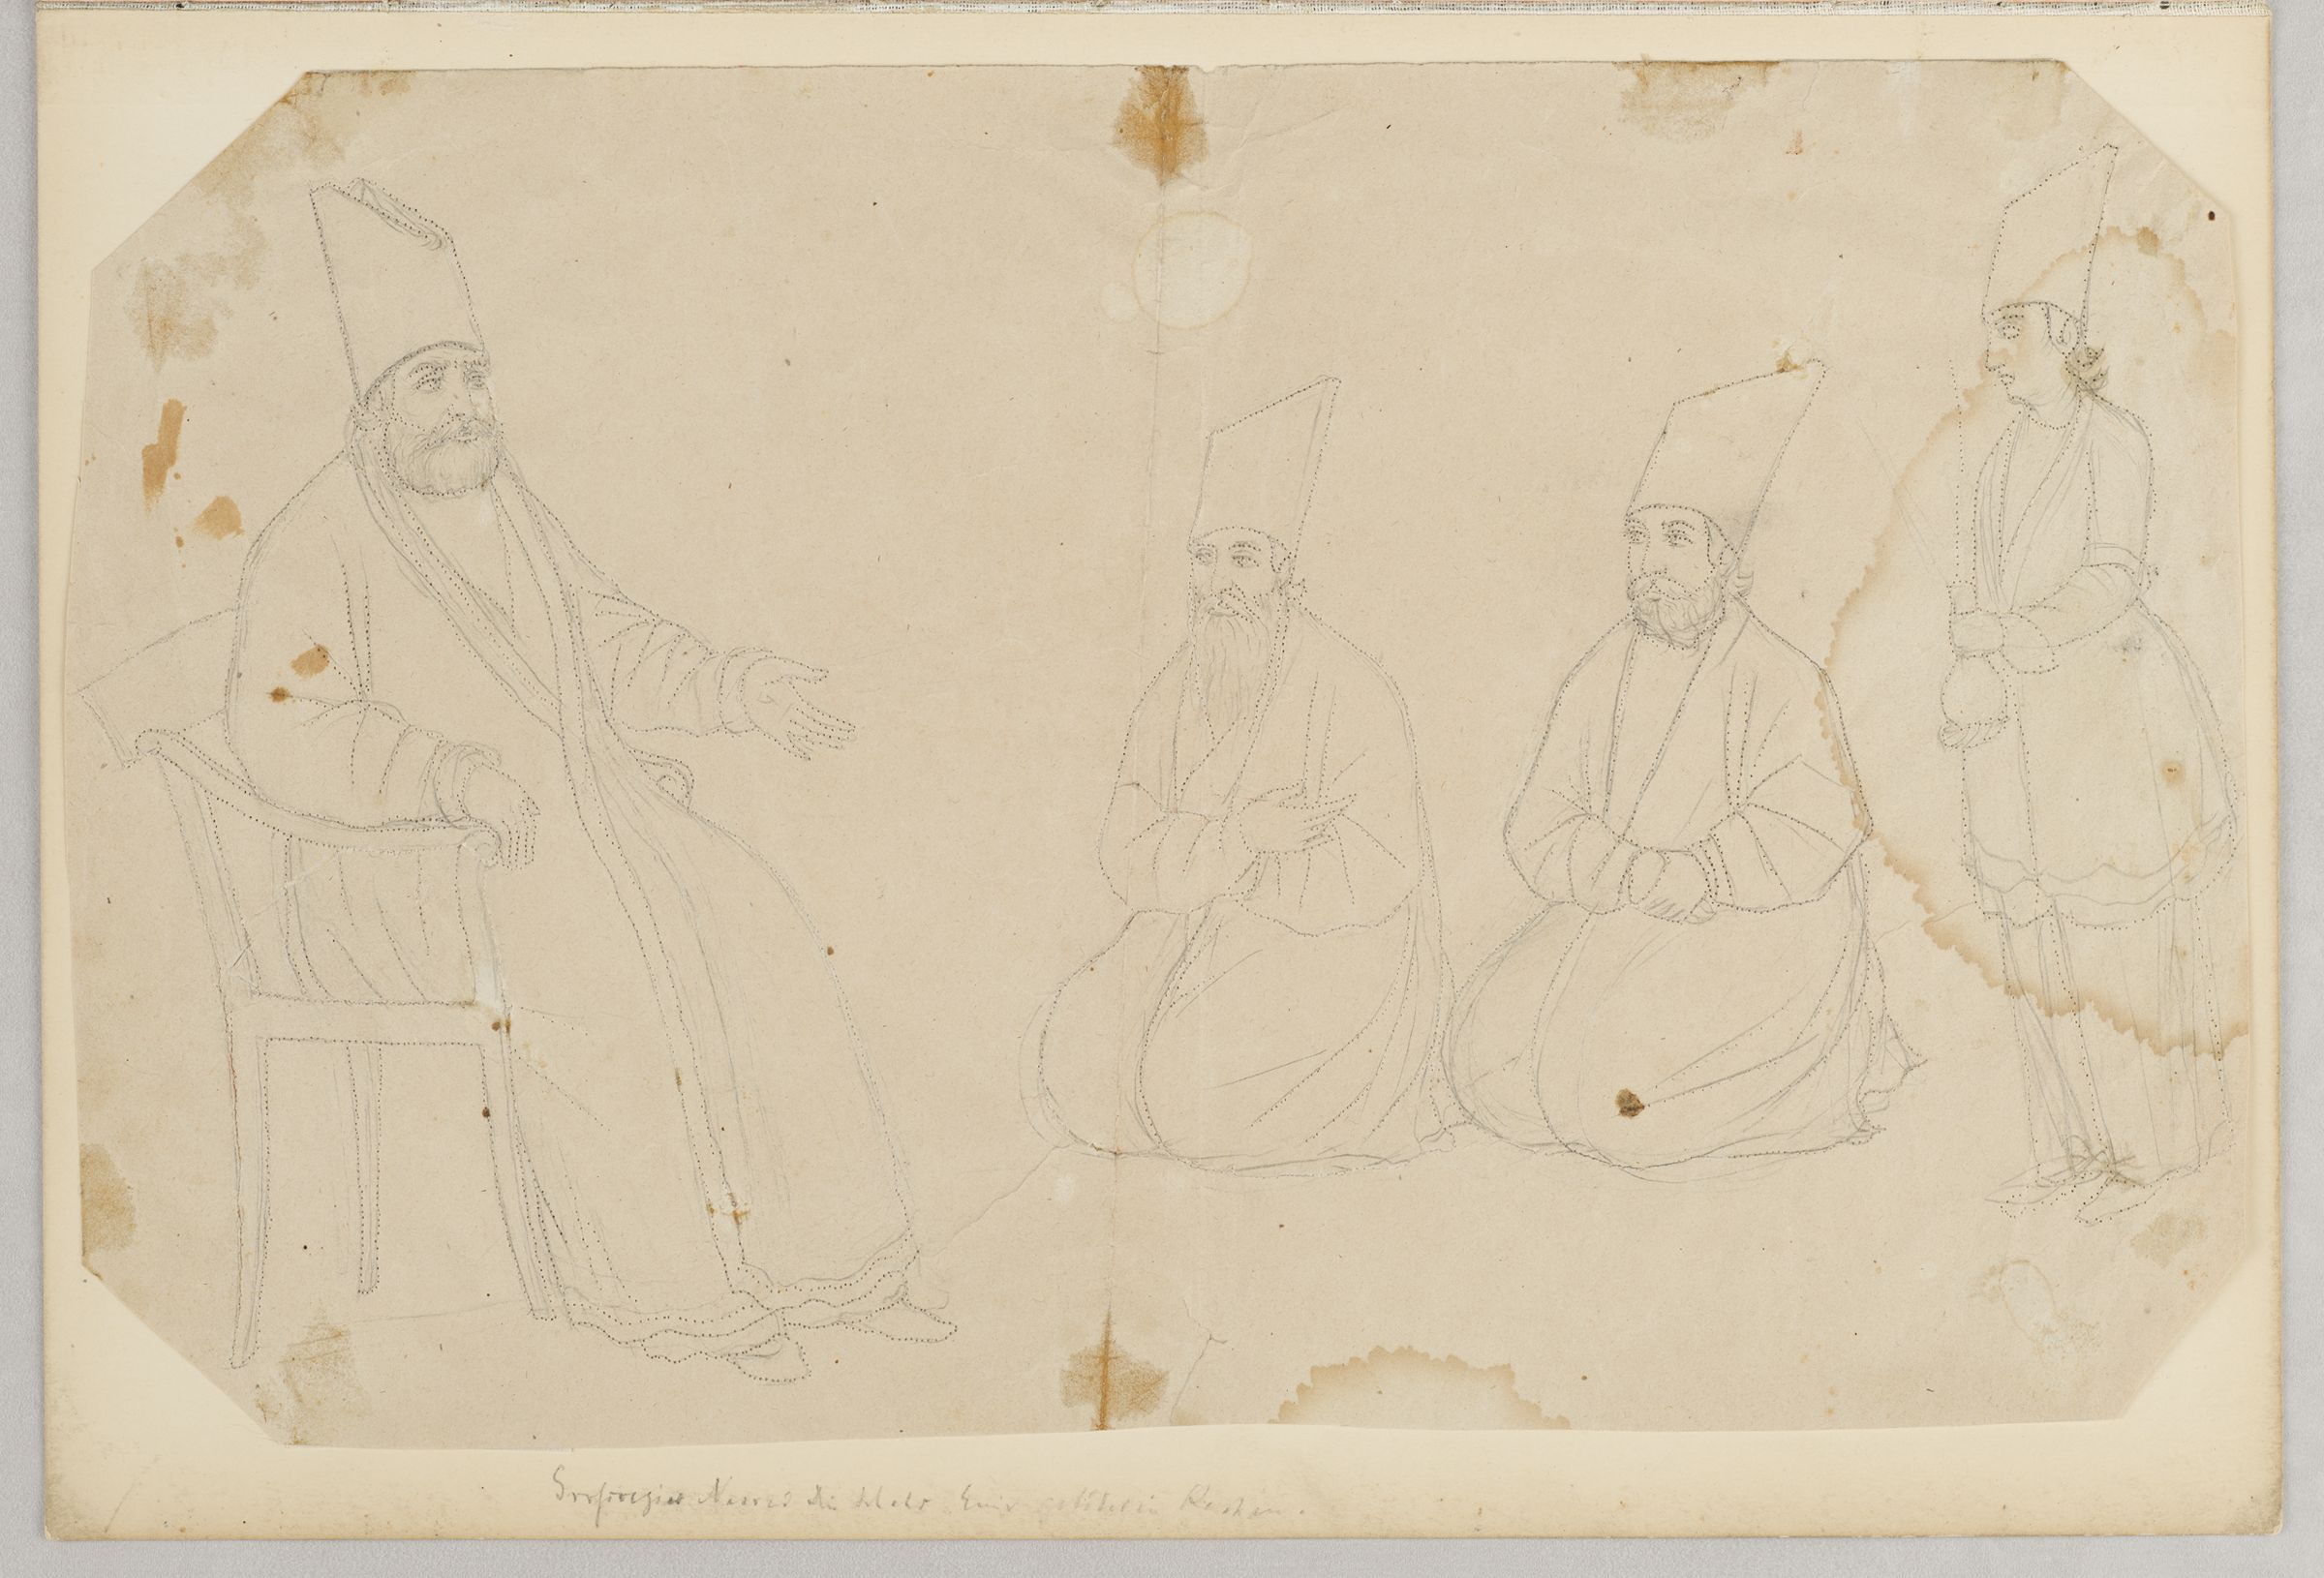 Folio 9 From An Album Of Drawings And Paintings: Amir Kabir In Audience With Kneeling Courtiers (Recto); Blank Page (Verso)